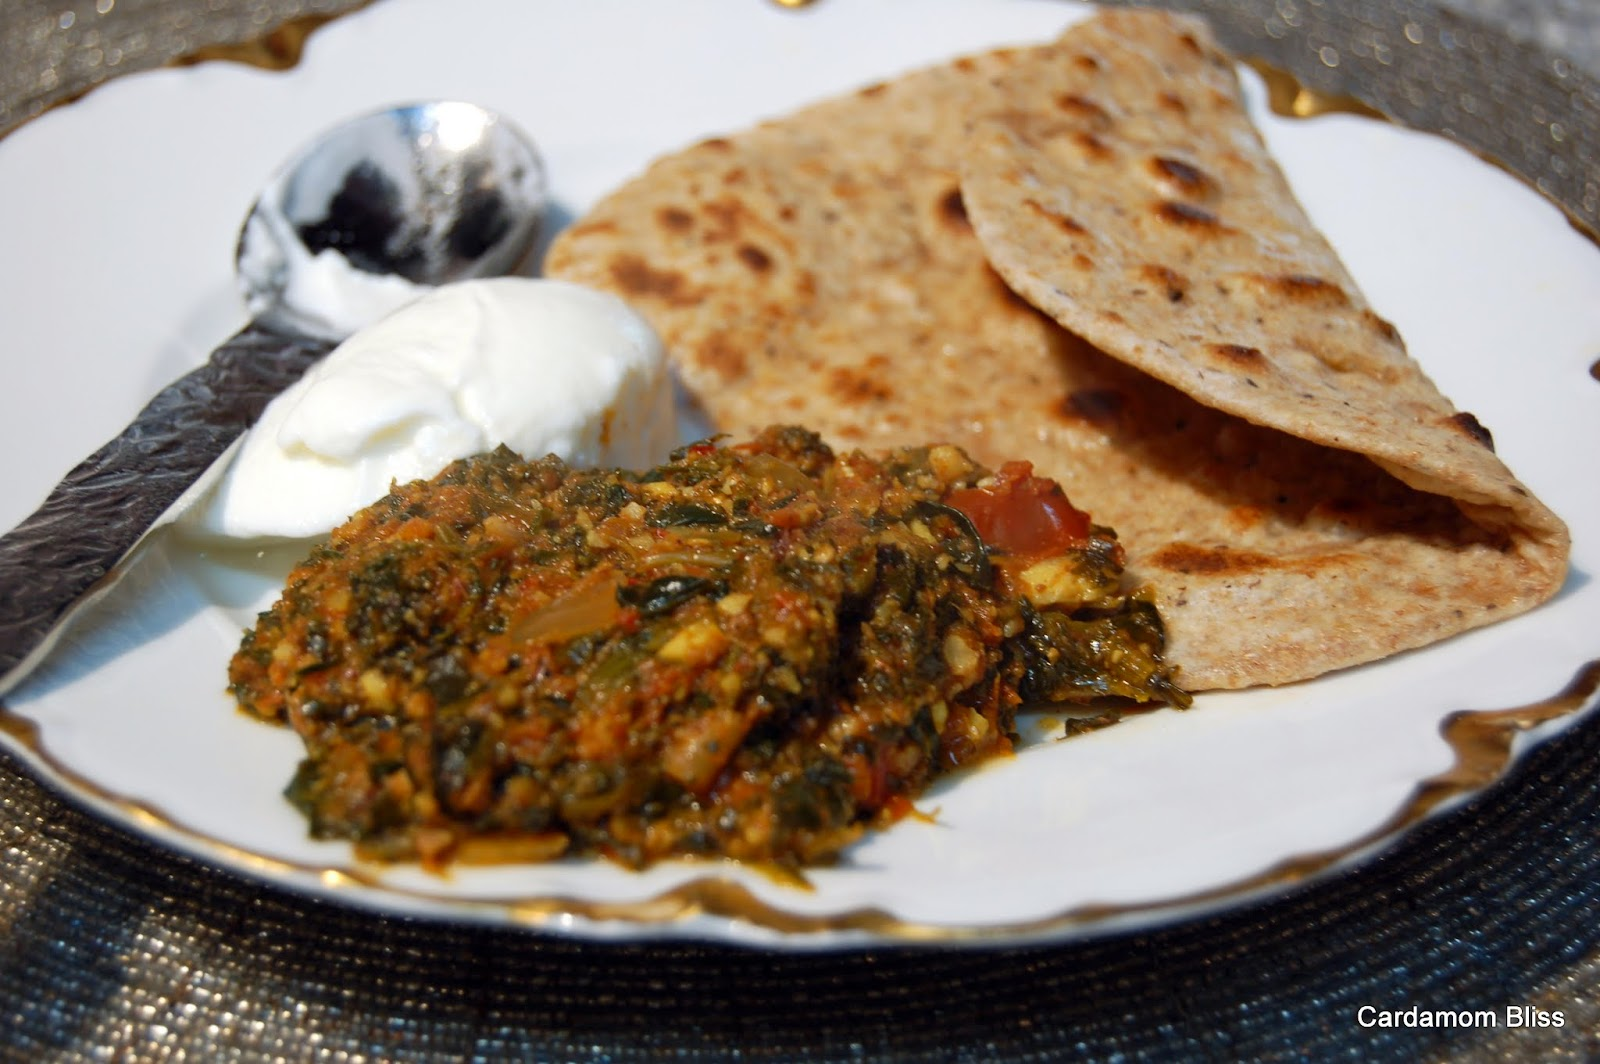 Almond Masala Stew with a chapatti and a bit of plain yogurt